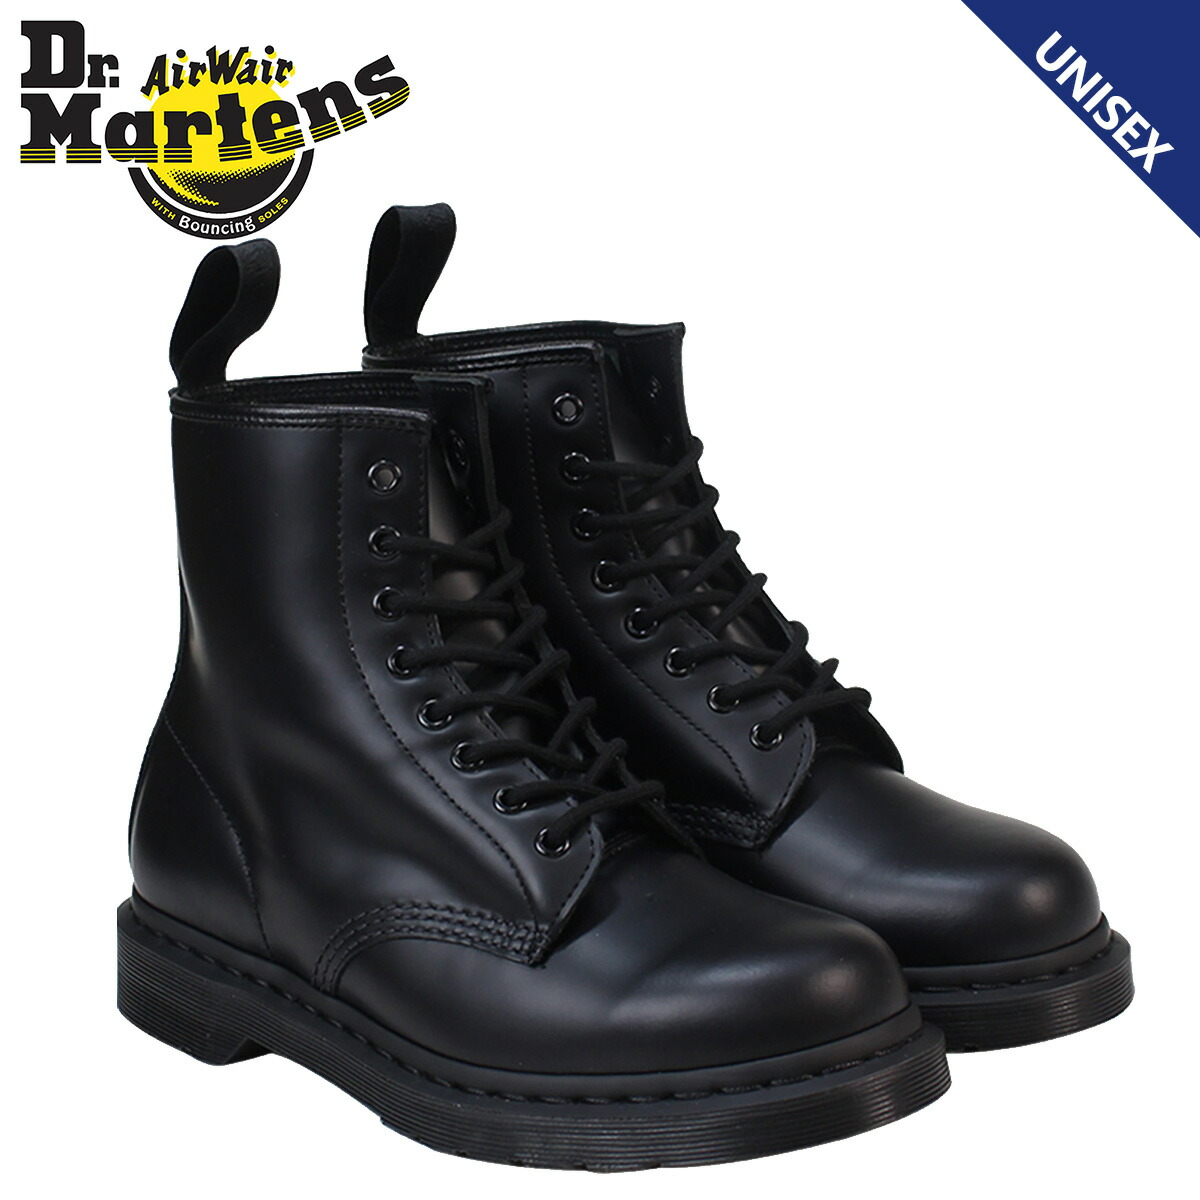 Dr Martens Shoes Shop Online